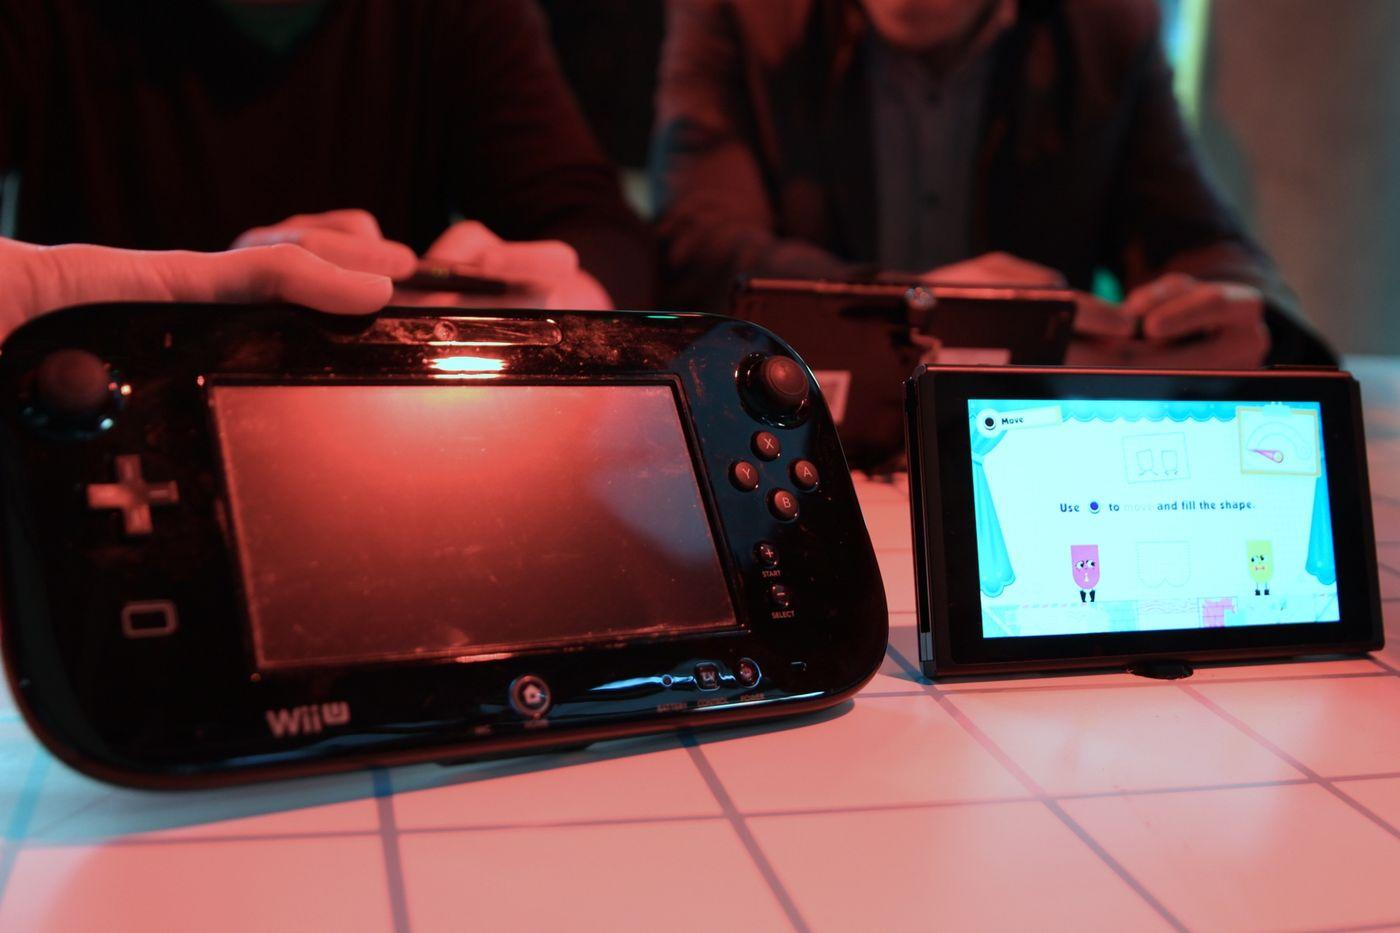 Nintendo Switch is leaving these Wii U features behind